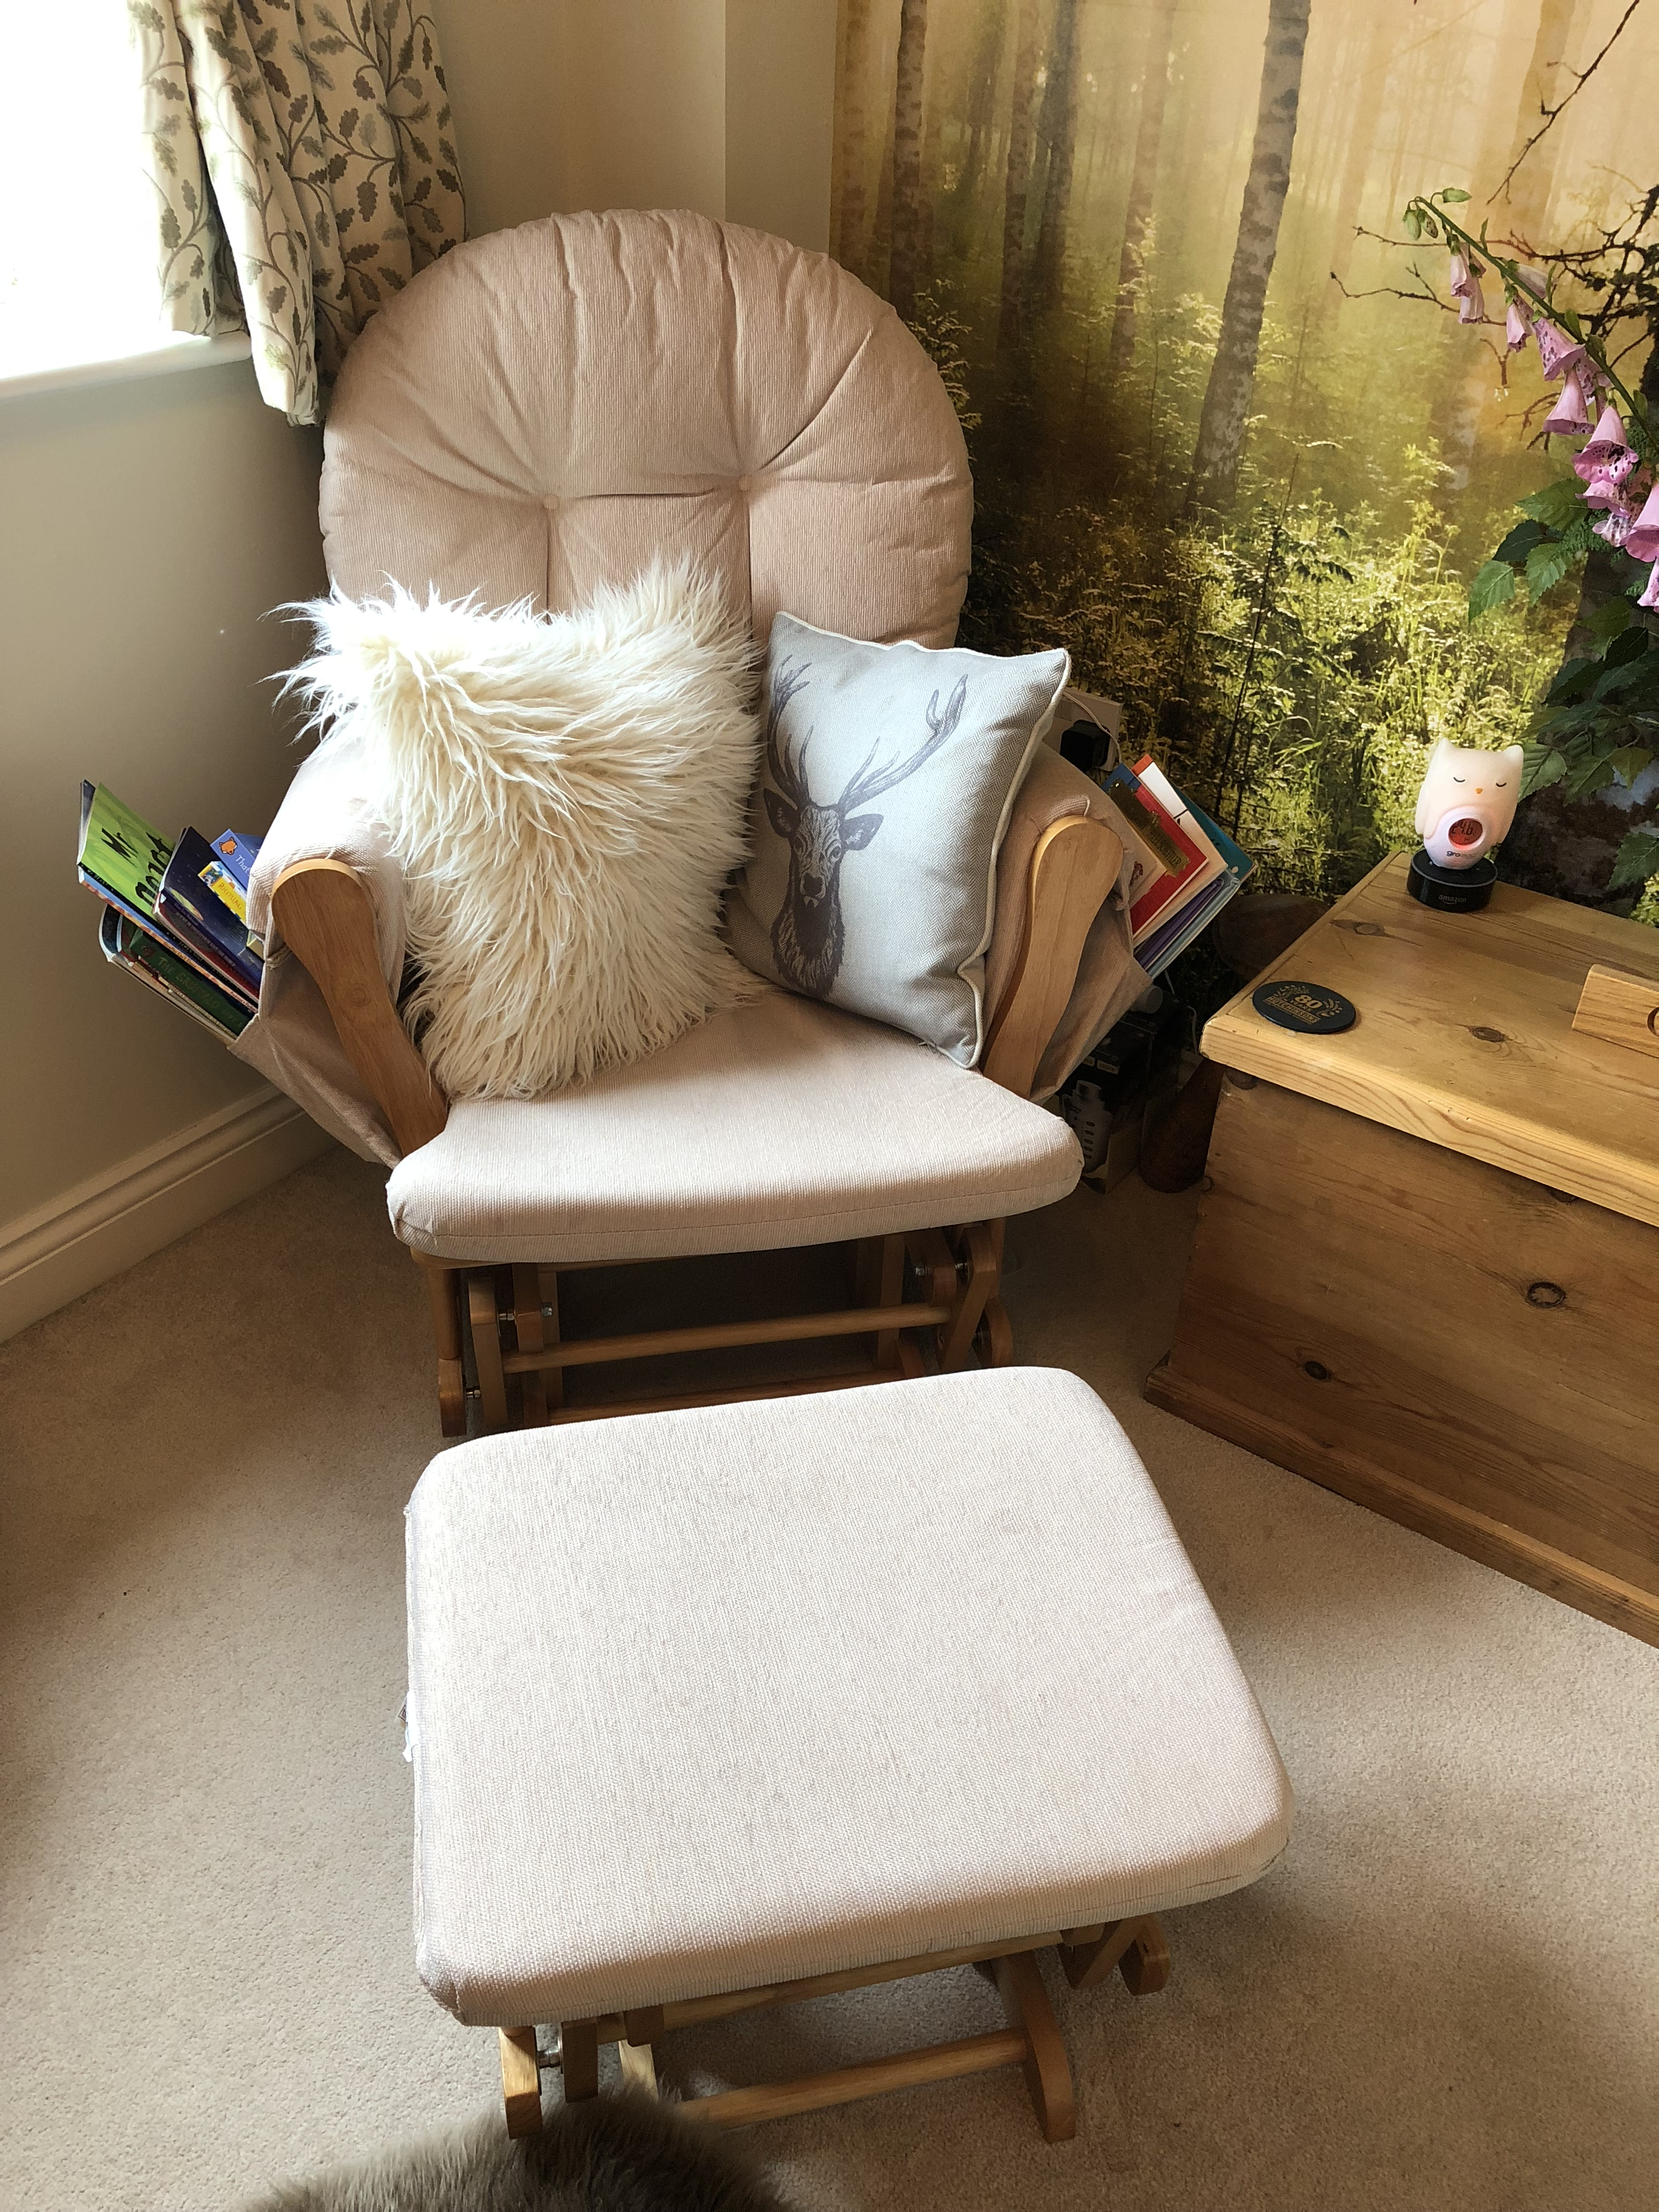 Nursing Chair from Smyths Toy Superstore